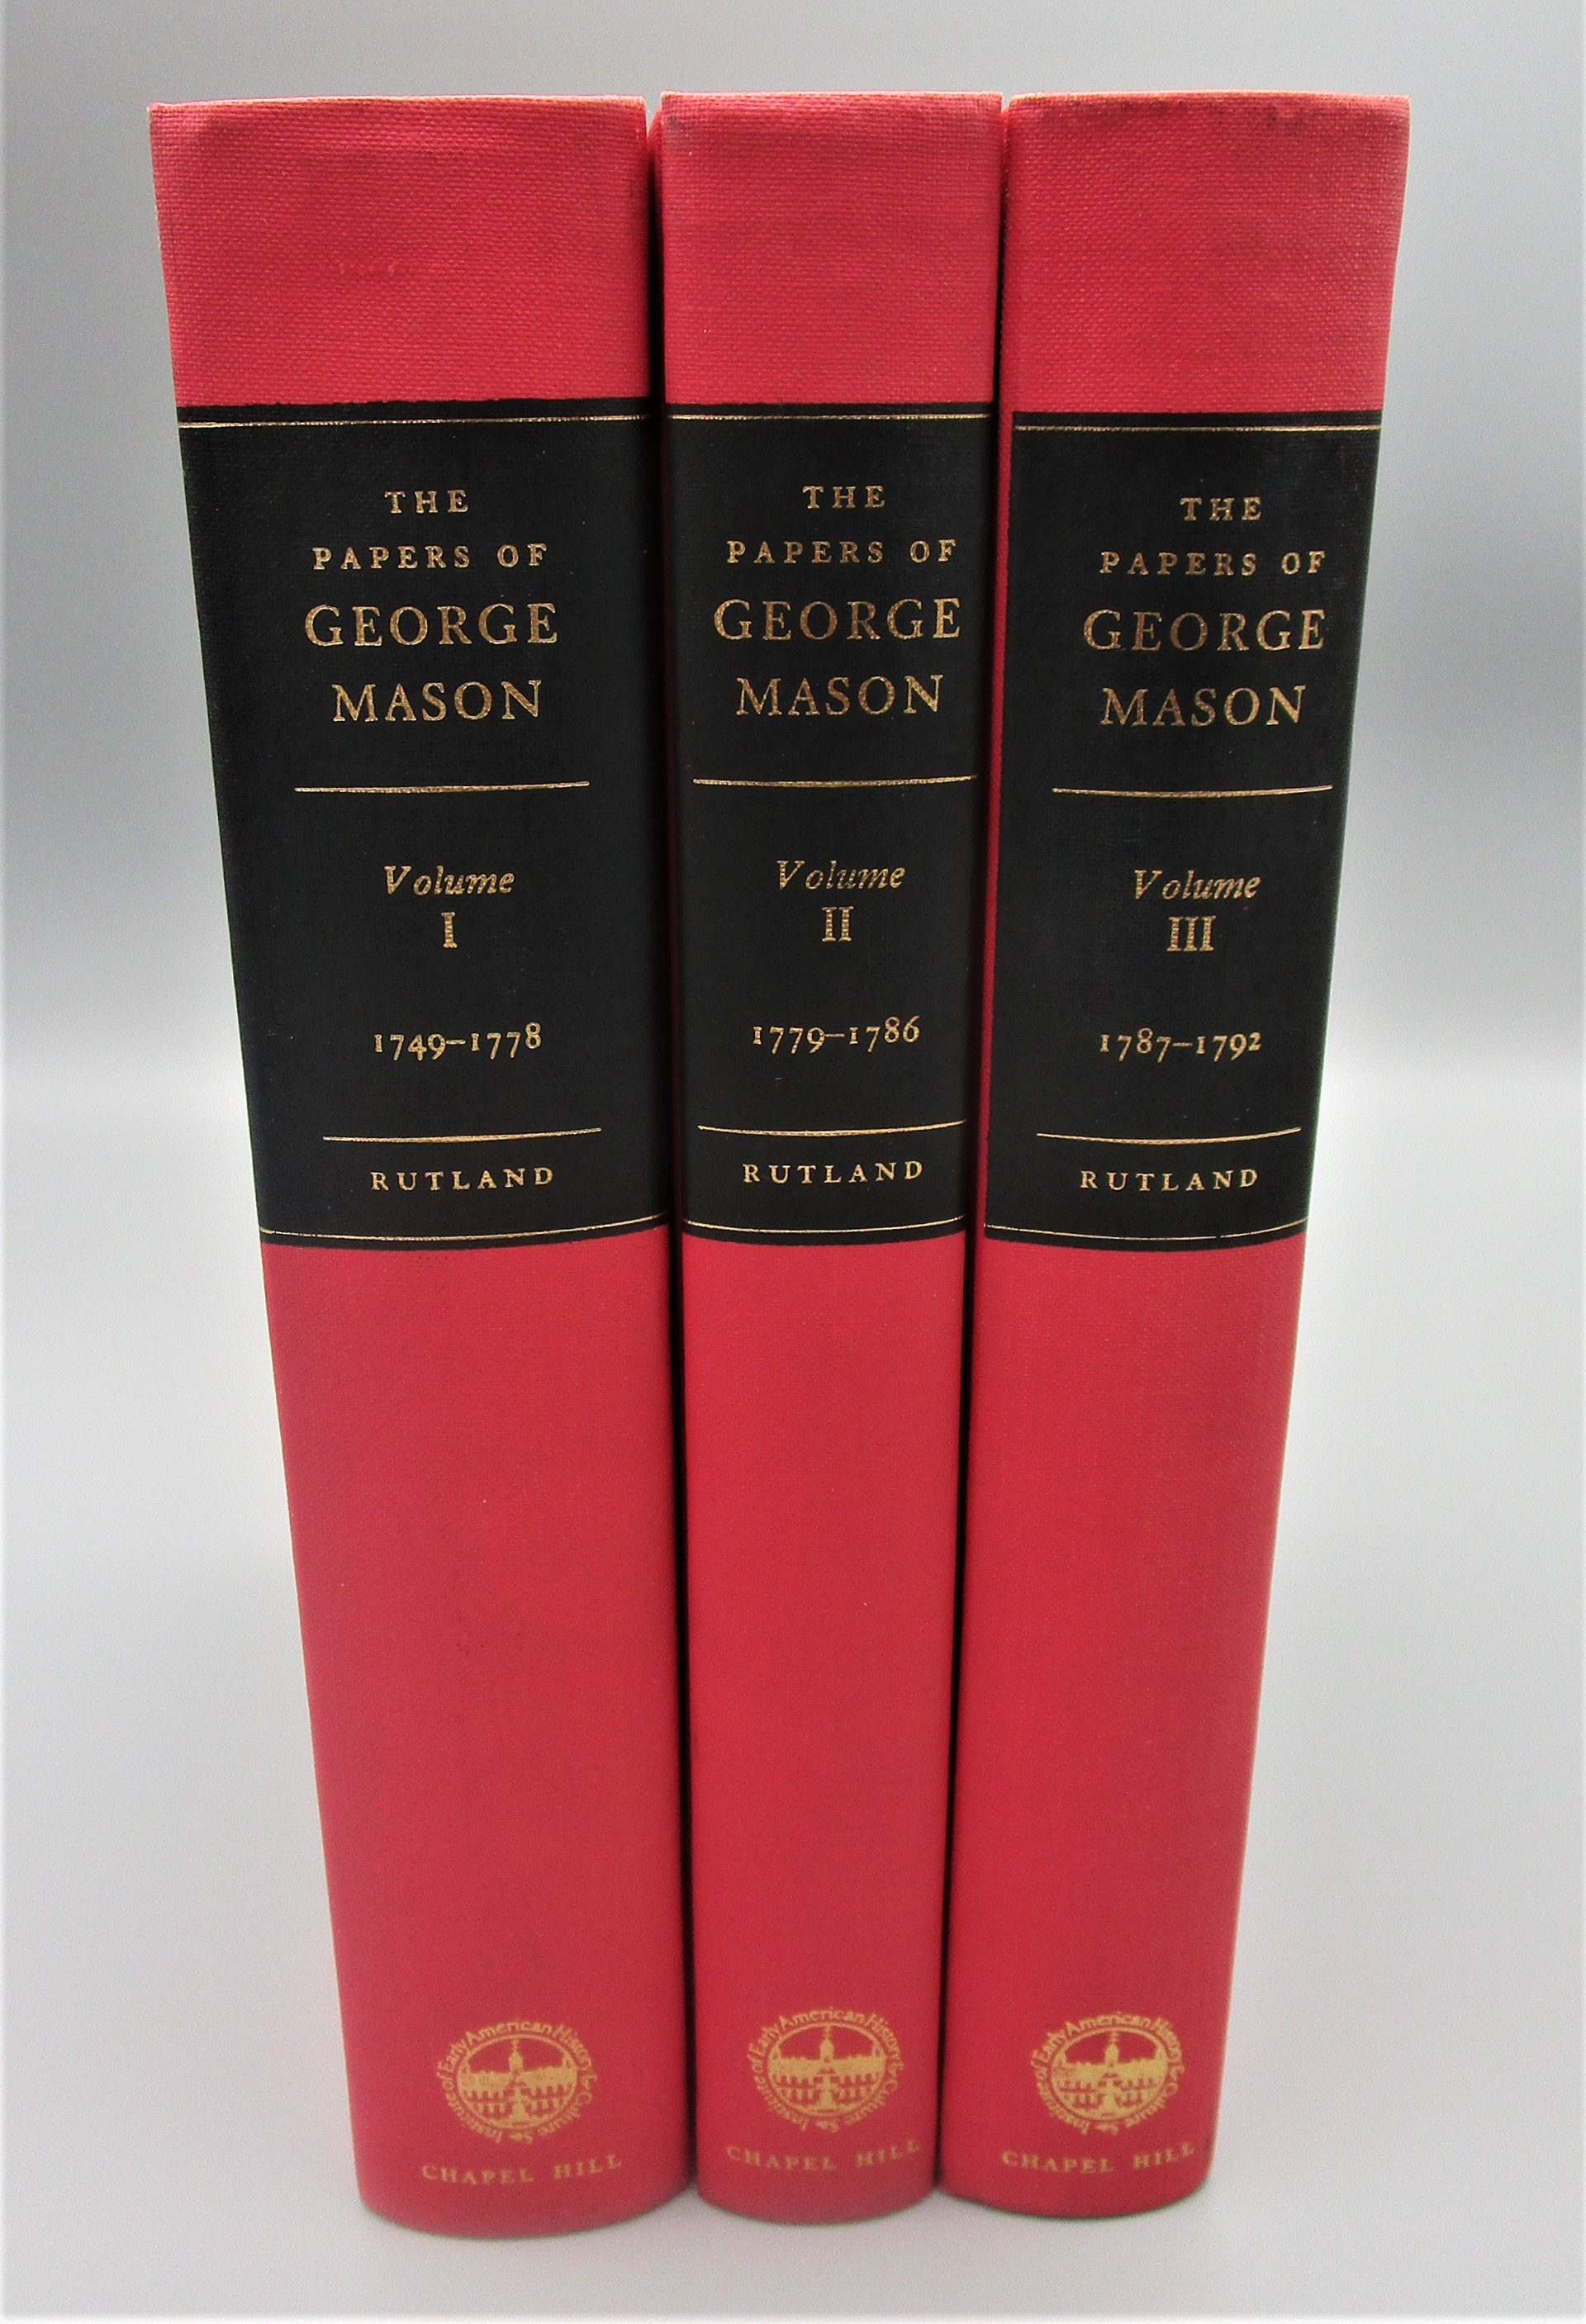 PAPERS OF GEORGE MASON 1725-1792, by Robert A. Rutland - 1970 [3 Vols]